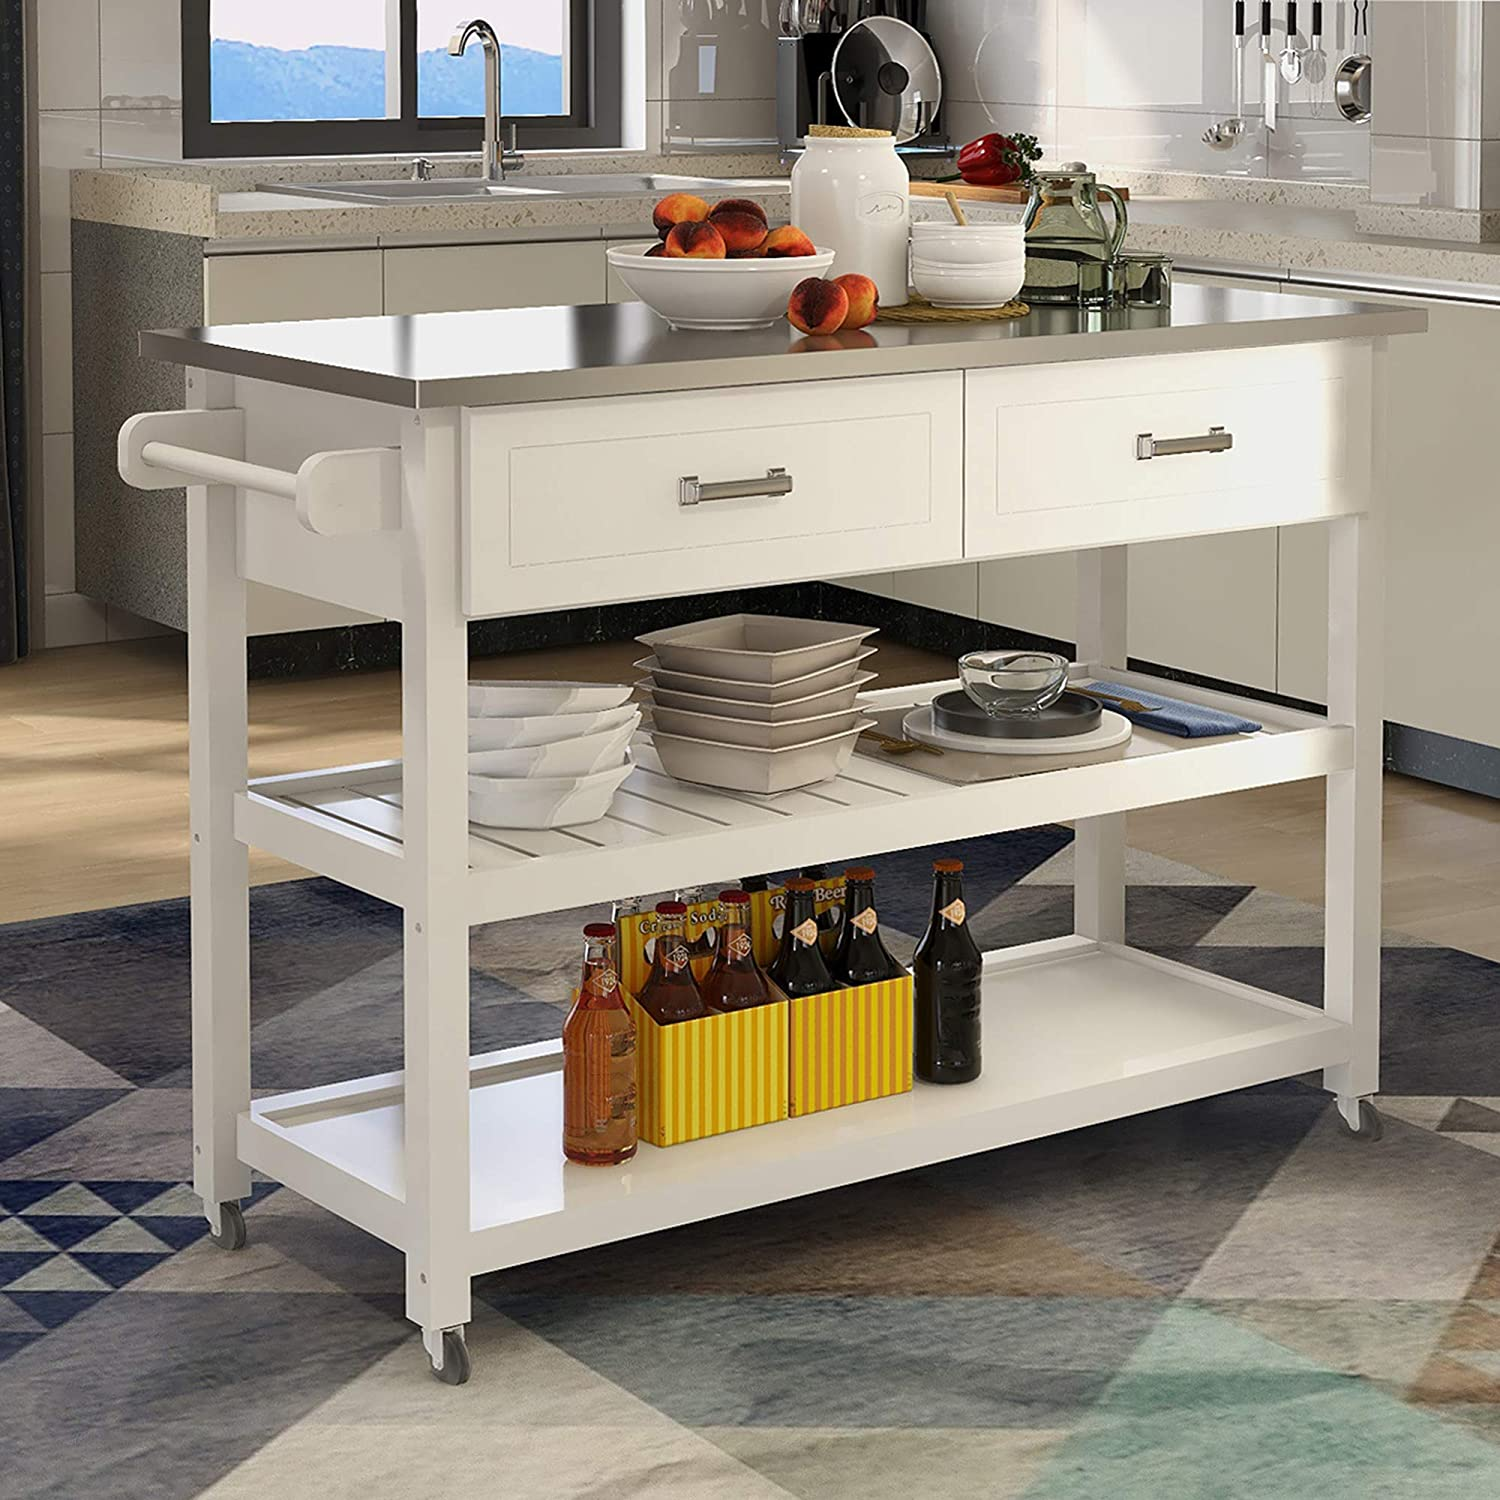 GIKPAL Kitchen Island Cart with Wheels, 9 Tier Kitchen Rolling Utility Cart  with 9 Drawer and 9 Spacious Storage Shelf Stainless Steel Table Top ...